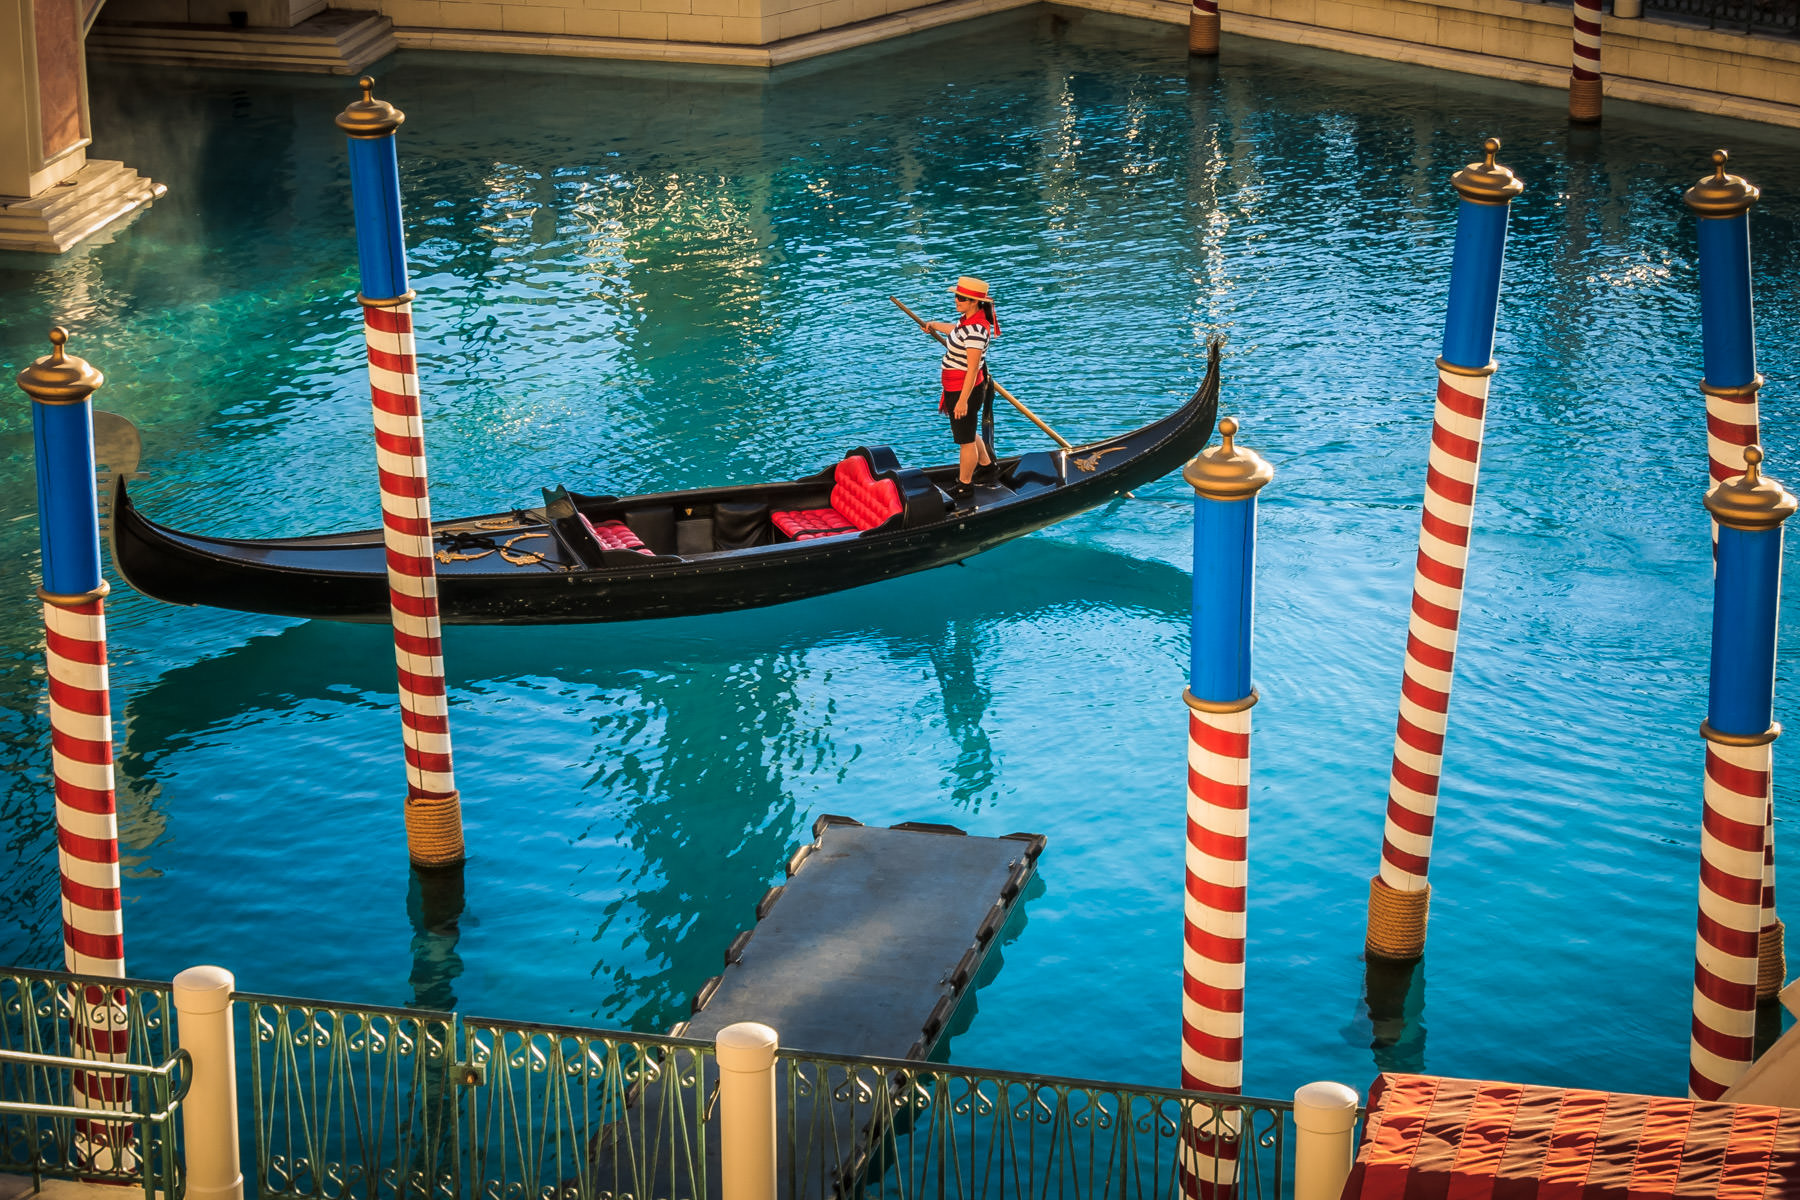 A gondolier steers her boat through the outdoor lagoon at The Venetian, Las Vegas.